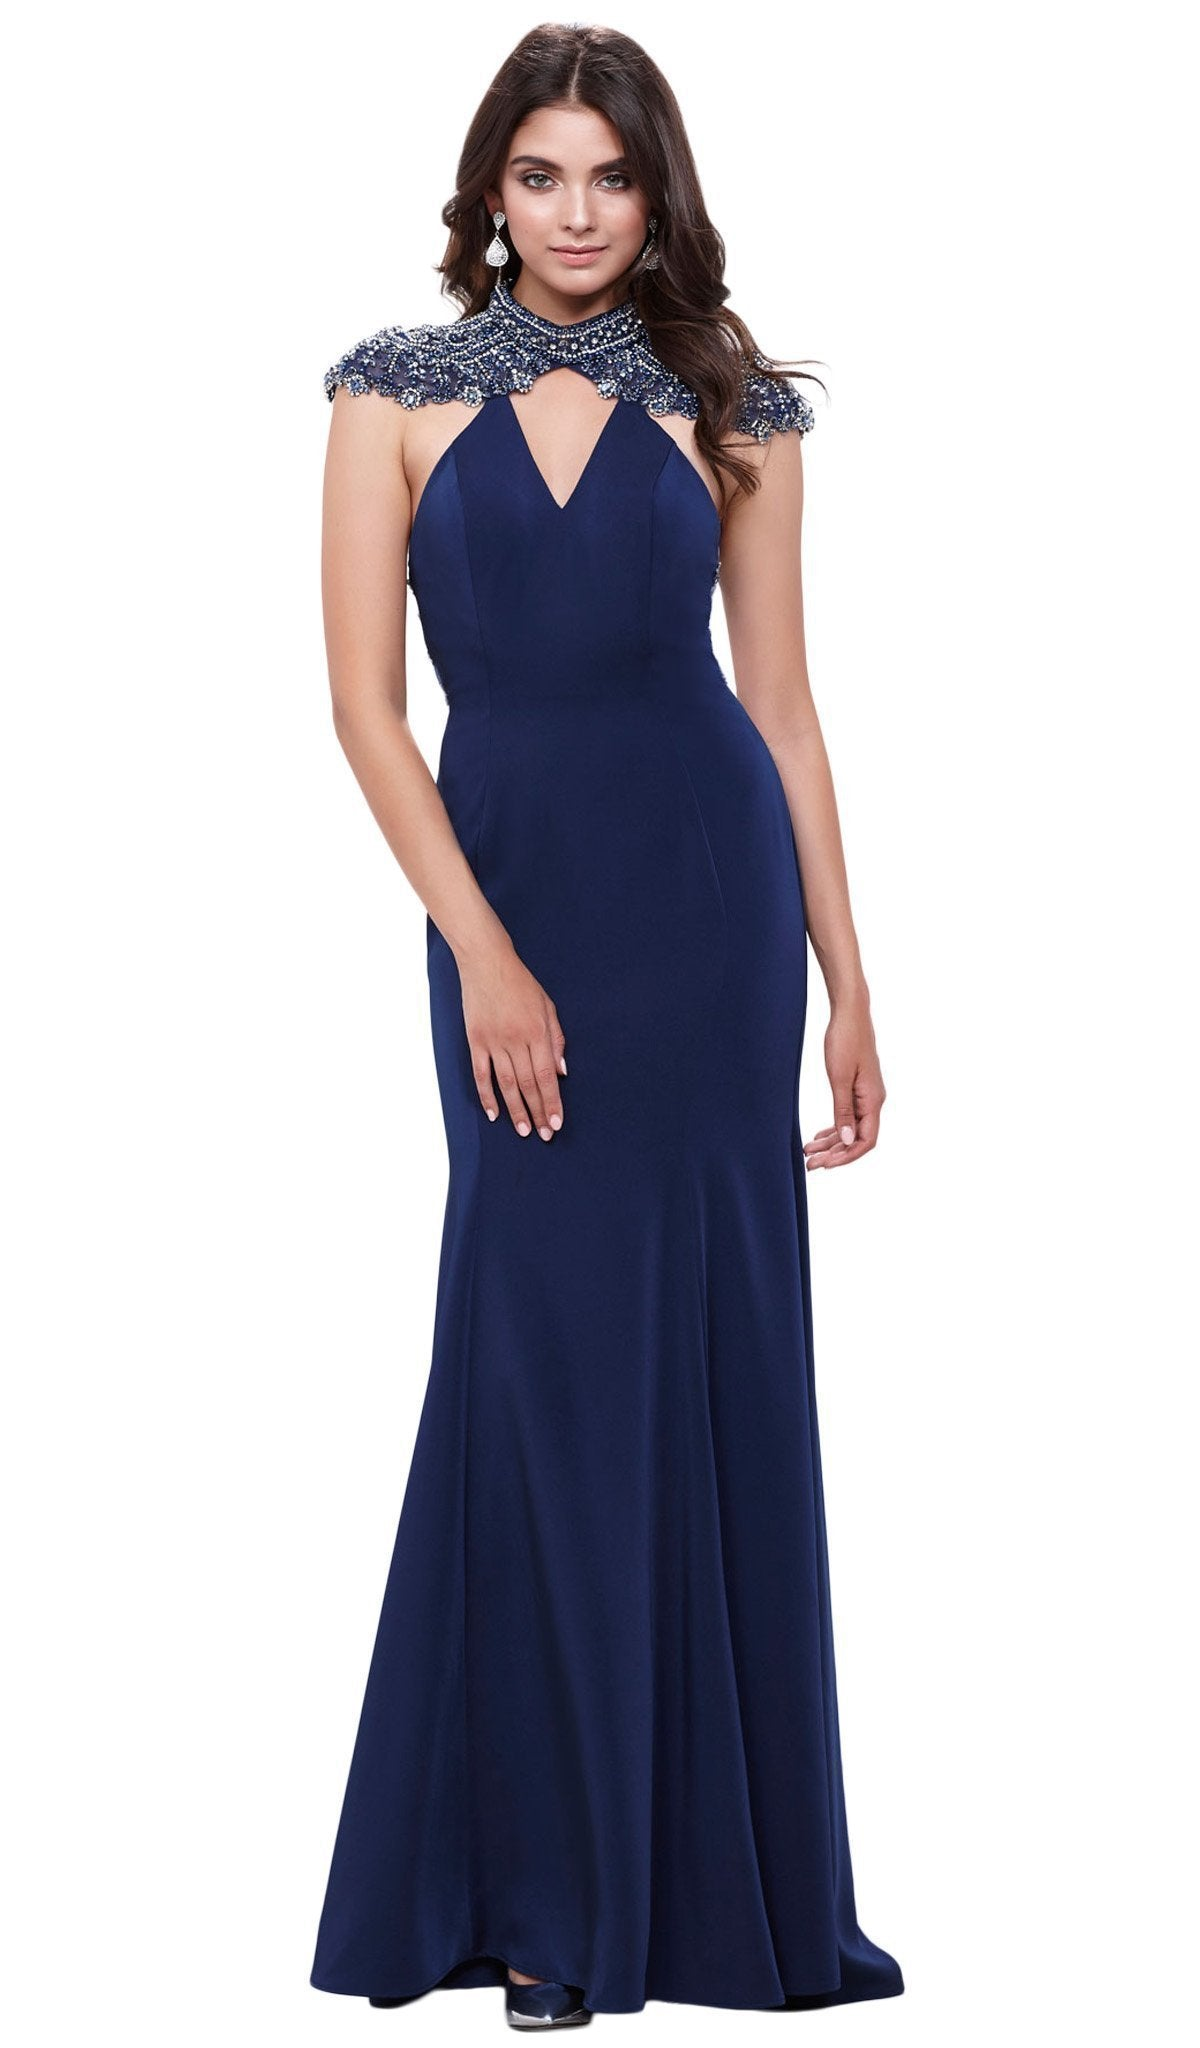 Nox Anabel - Beaded High Jewel Neck Gown 8293SC